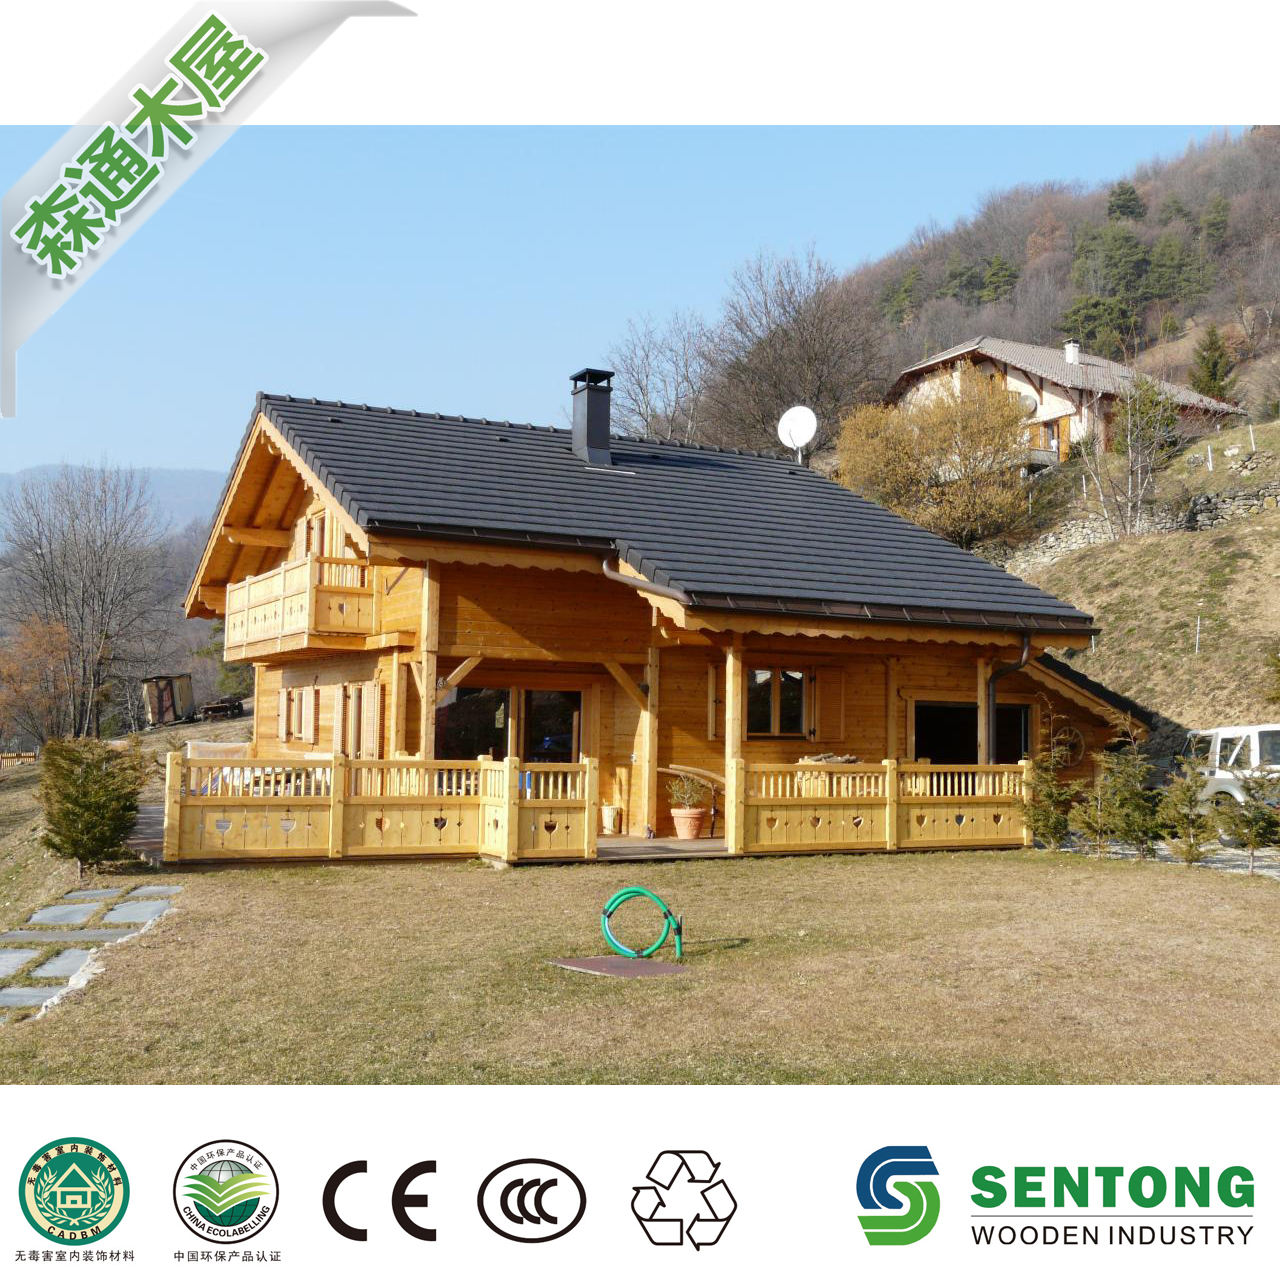 Sentong wooden Cabin Prefab Log Cabin hard Wooden House